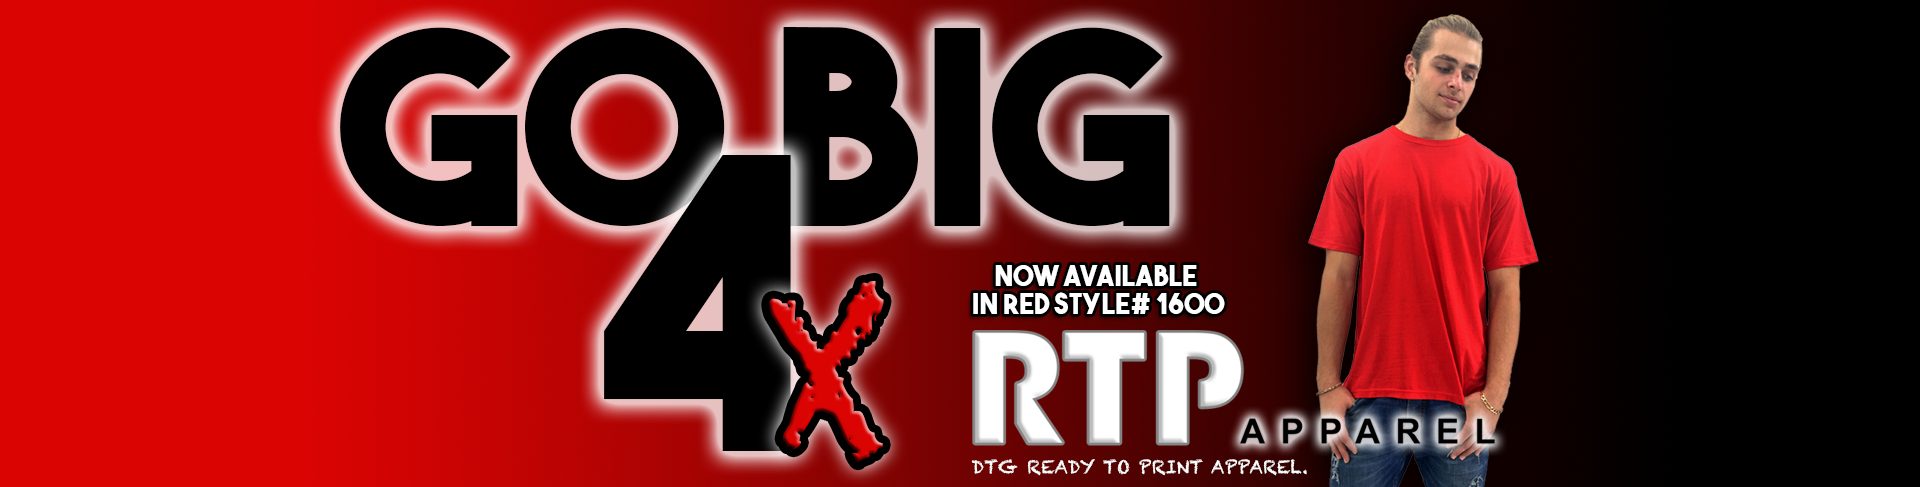 RTP Apparel in RED Go BIG 4X Available